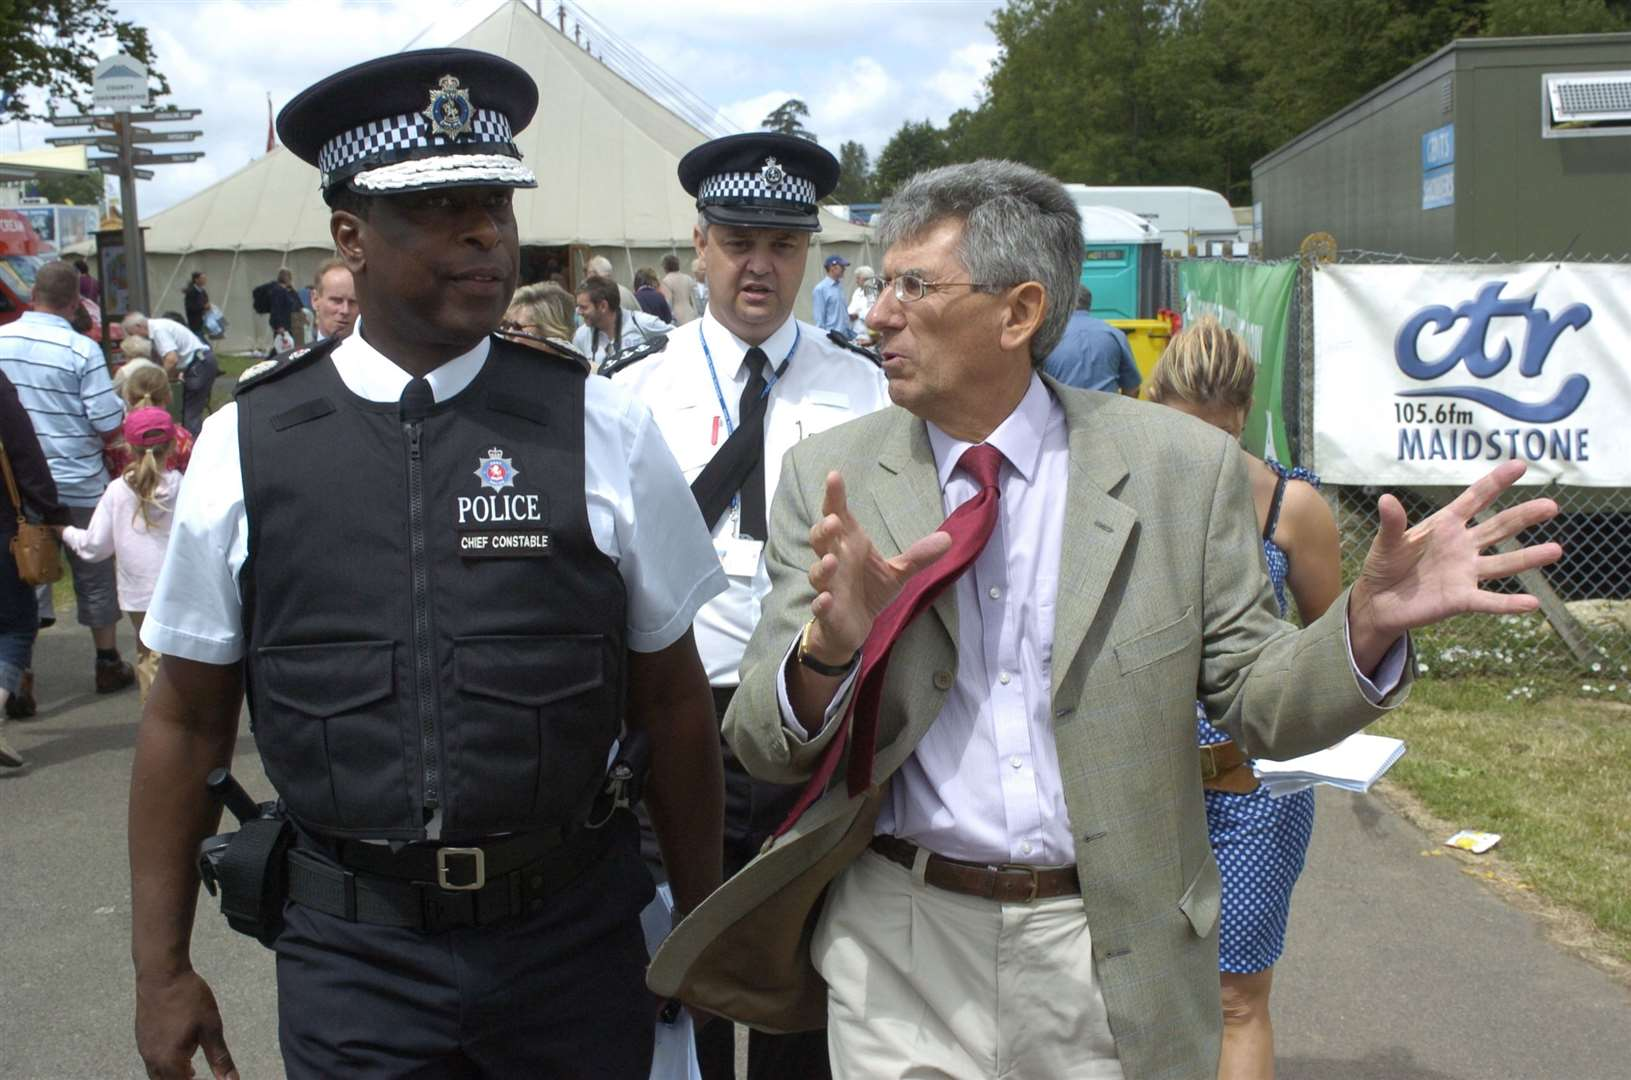 With then chief constable Mike Fuller launching Respect Awards at the KM stand at the 2006 County Show